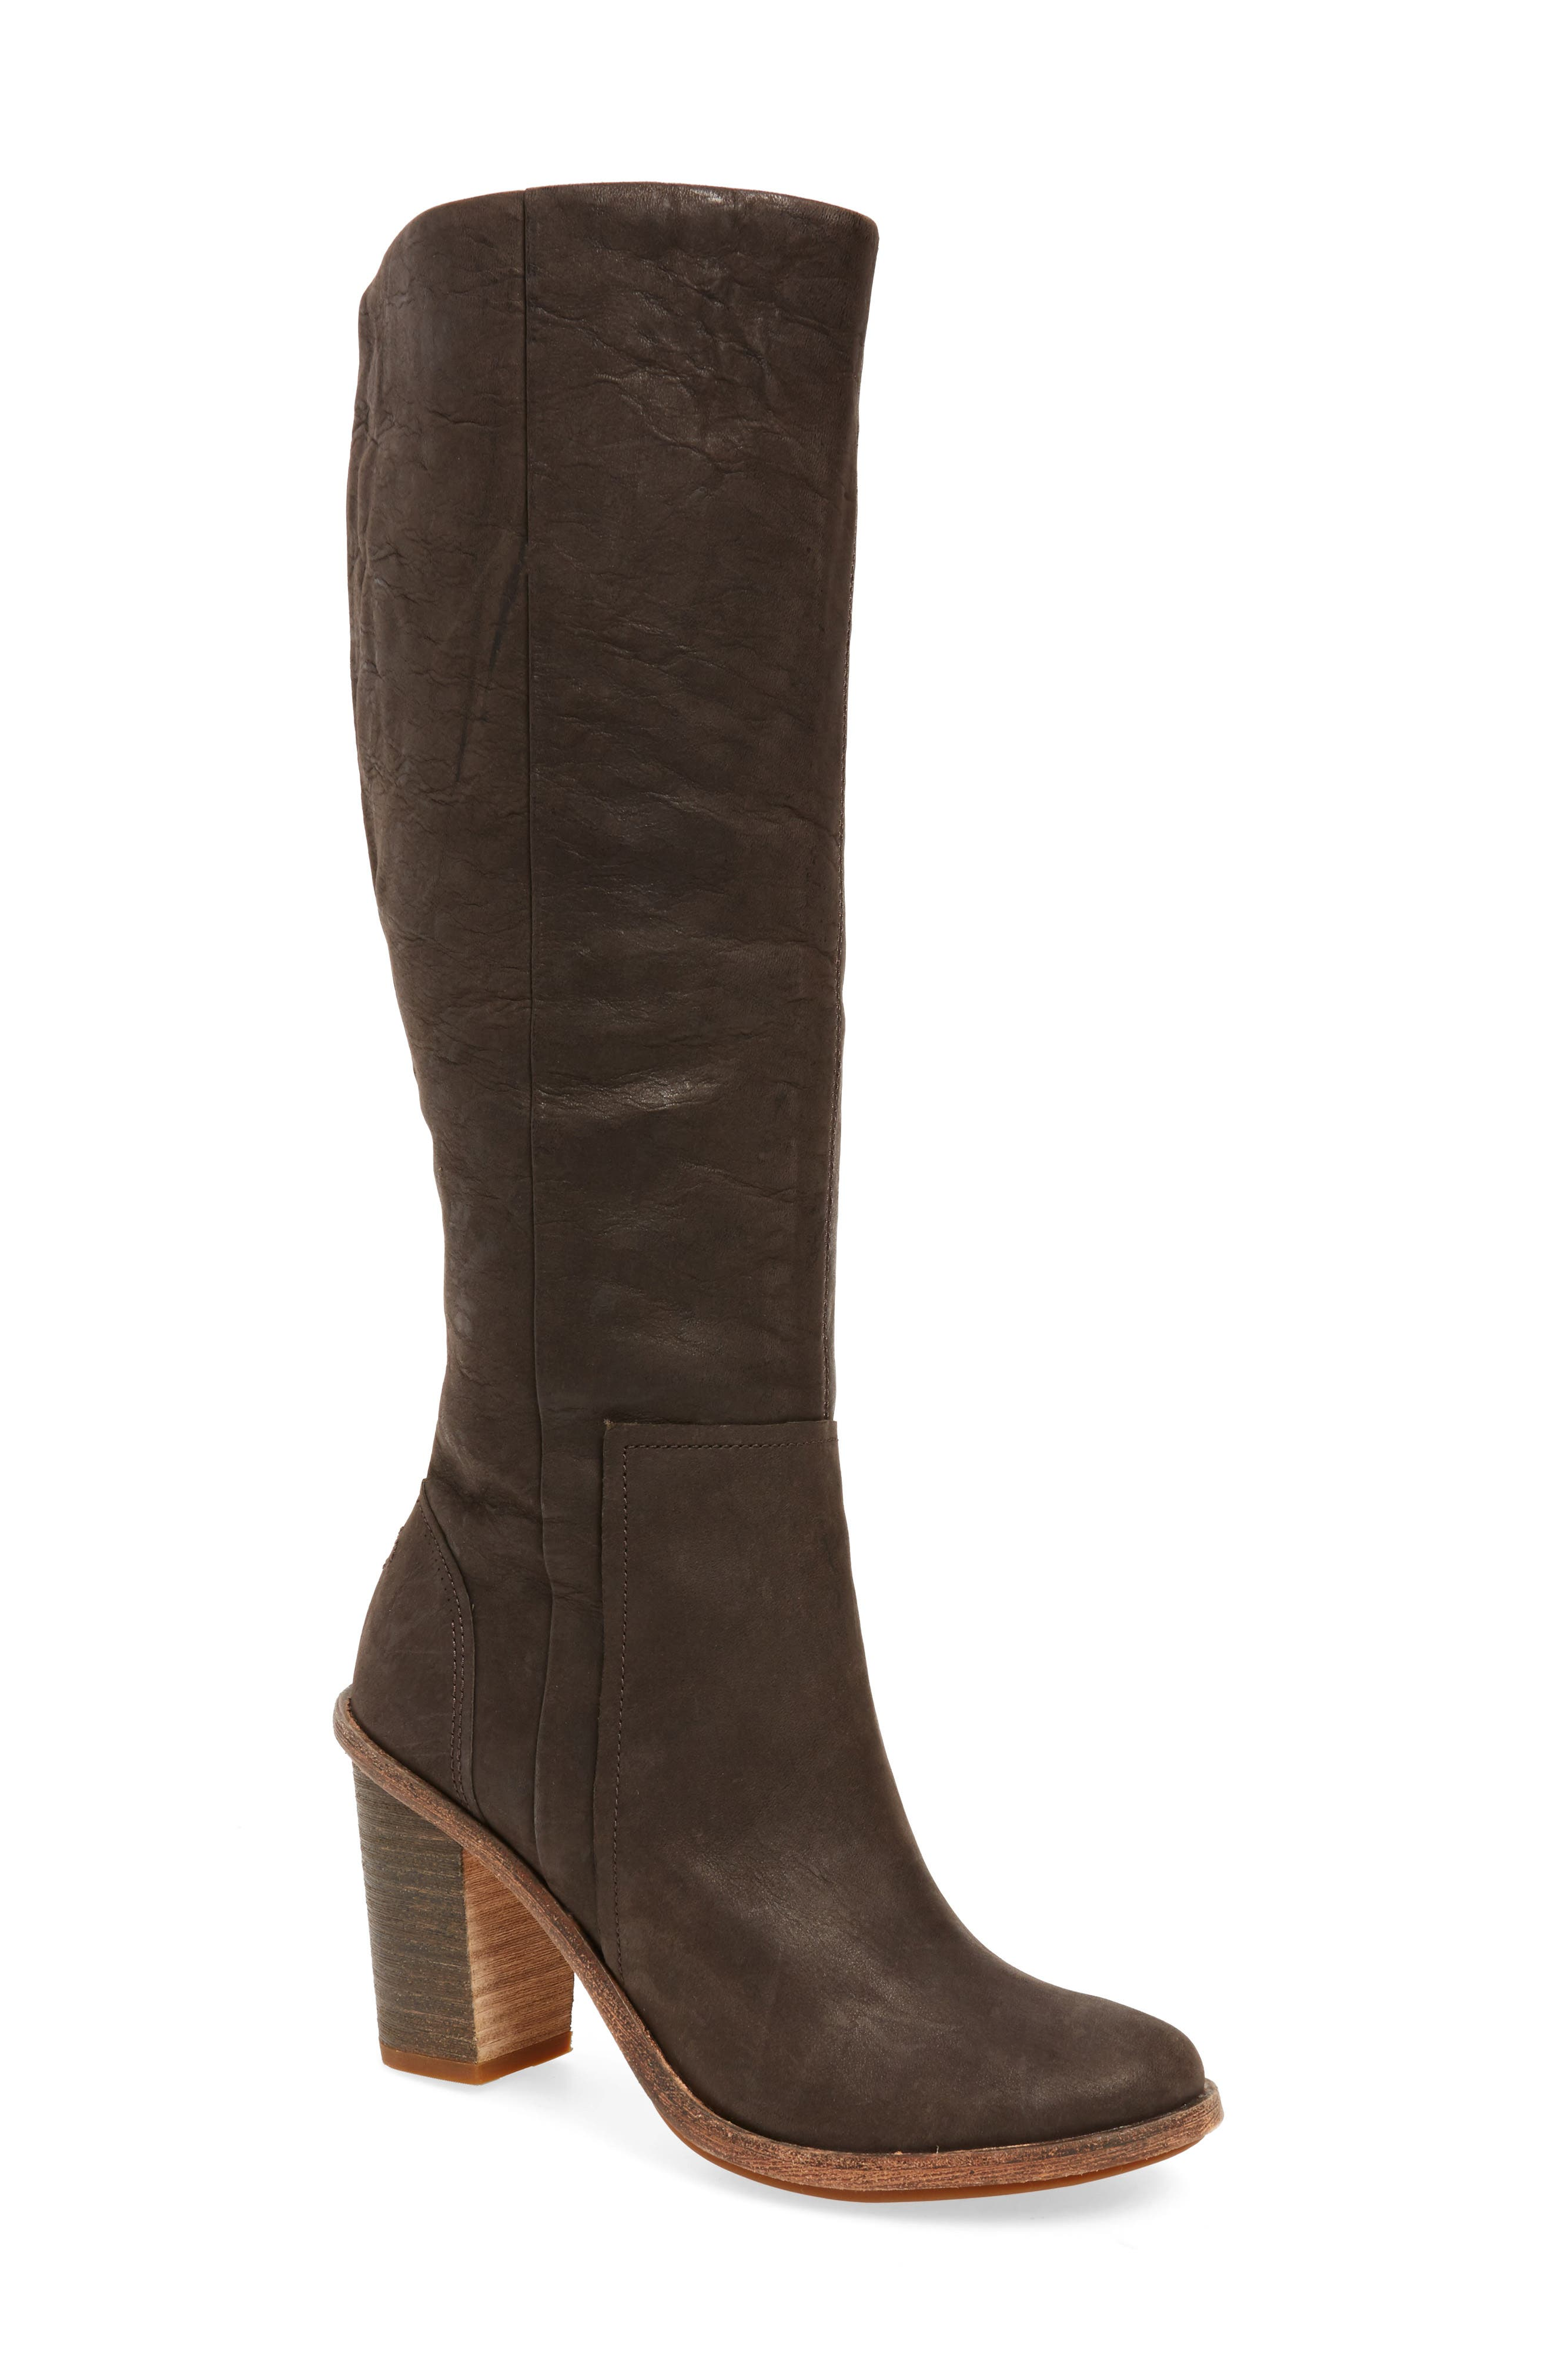 Alternate Image 1 Selected - Timberland 'Marge' Tall Boot (Women)